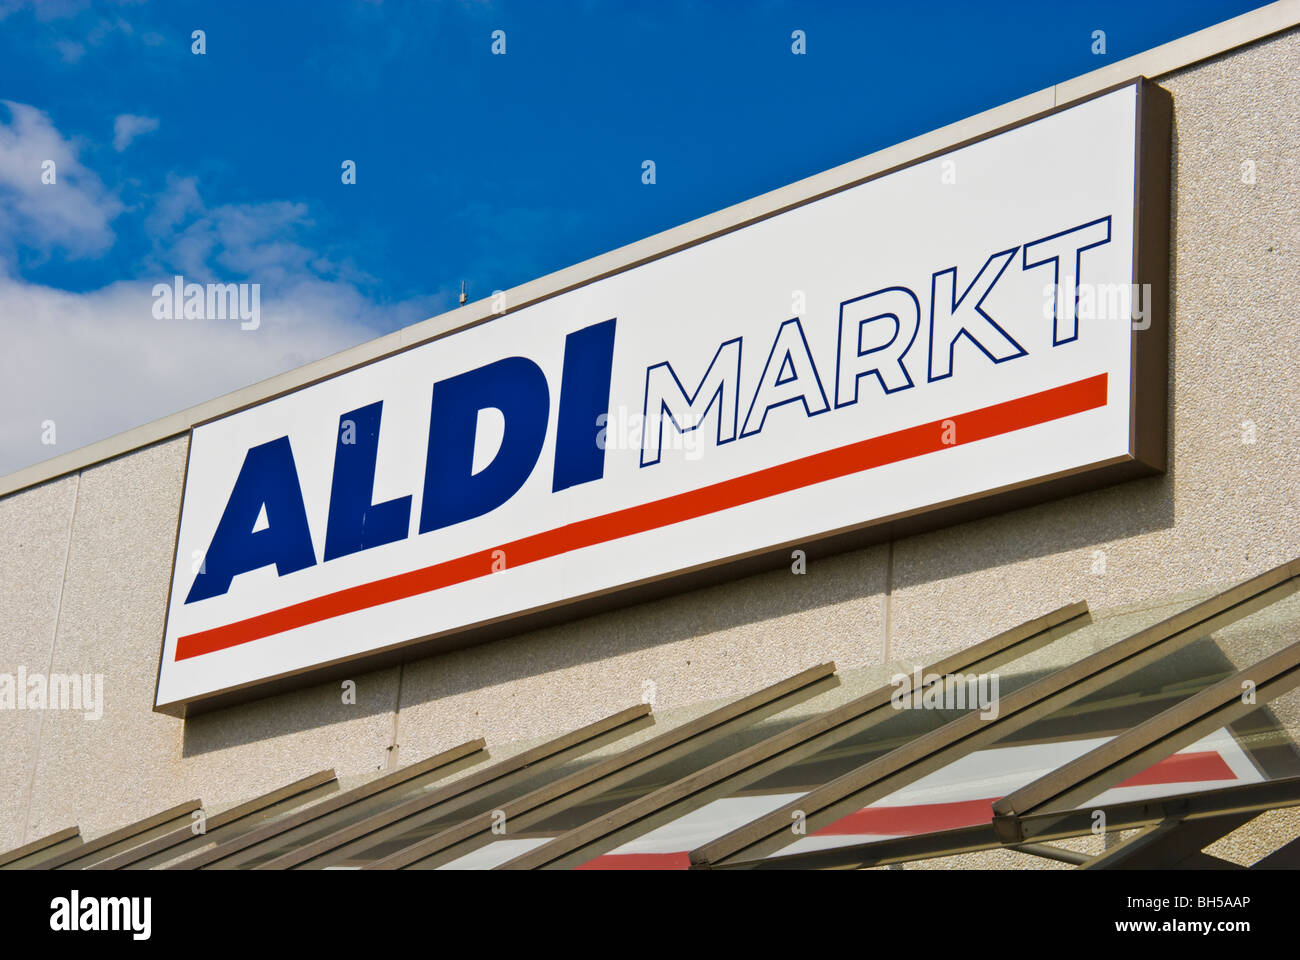 Aldi nord stock photos aldi nord stock images alamy logo of an aldi discount food and grocery store germany stock image biocorpaavc